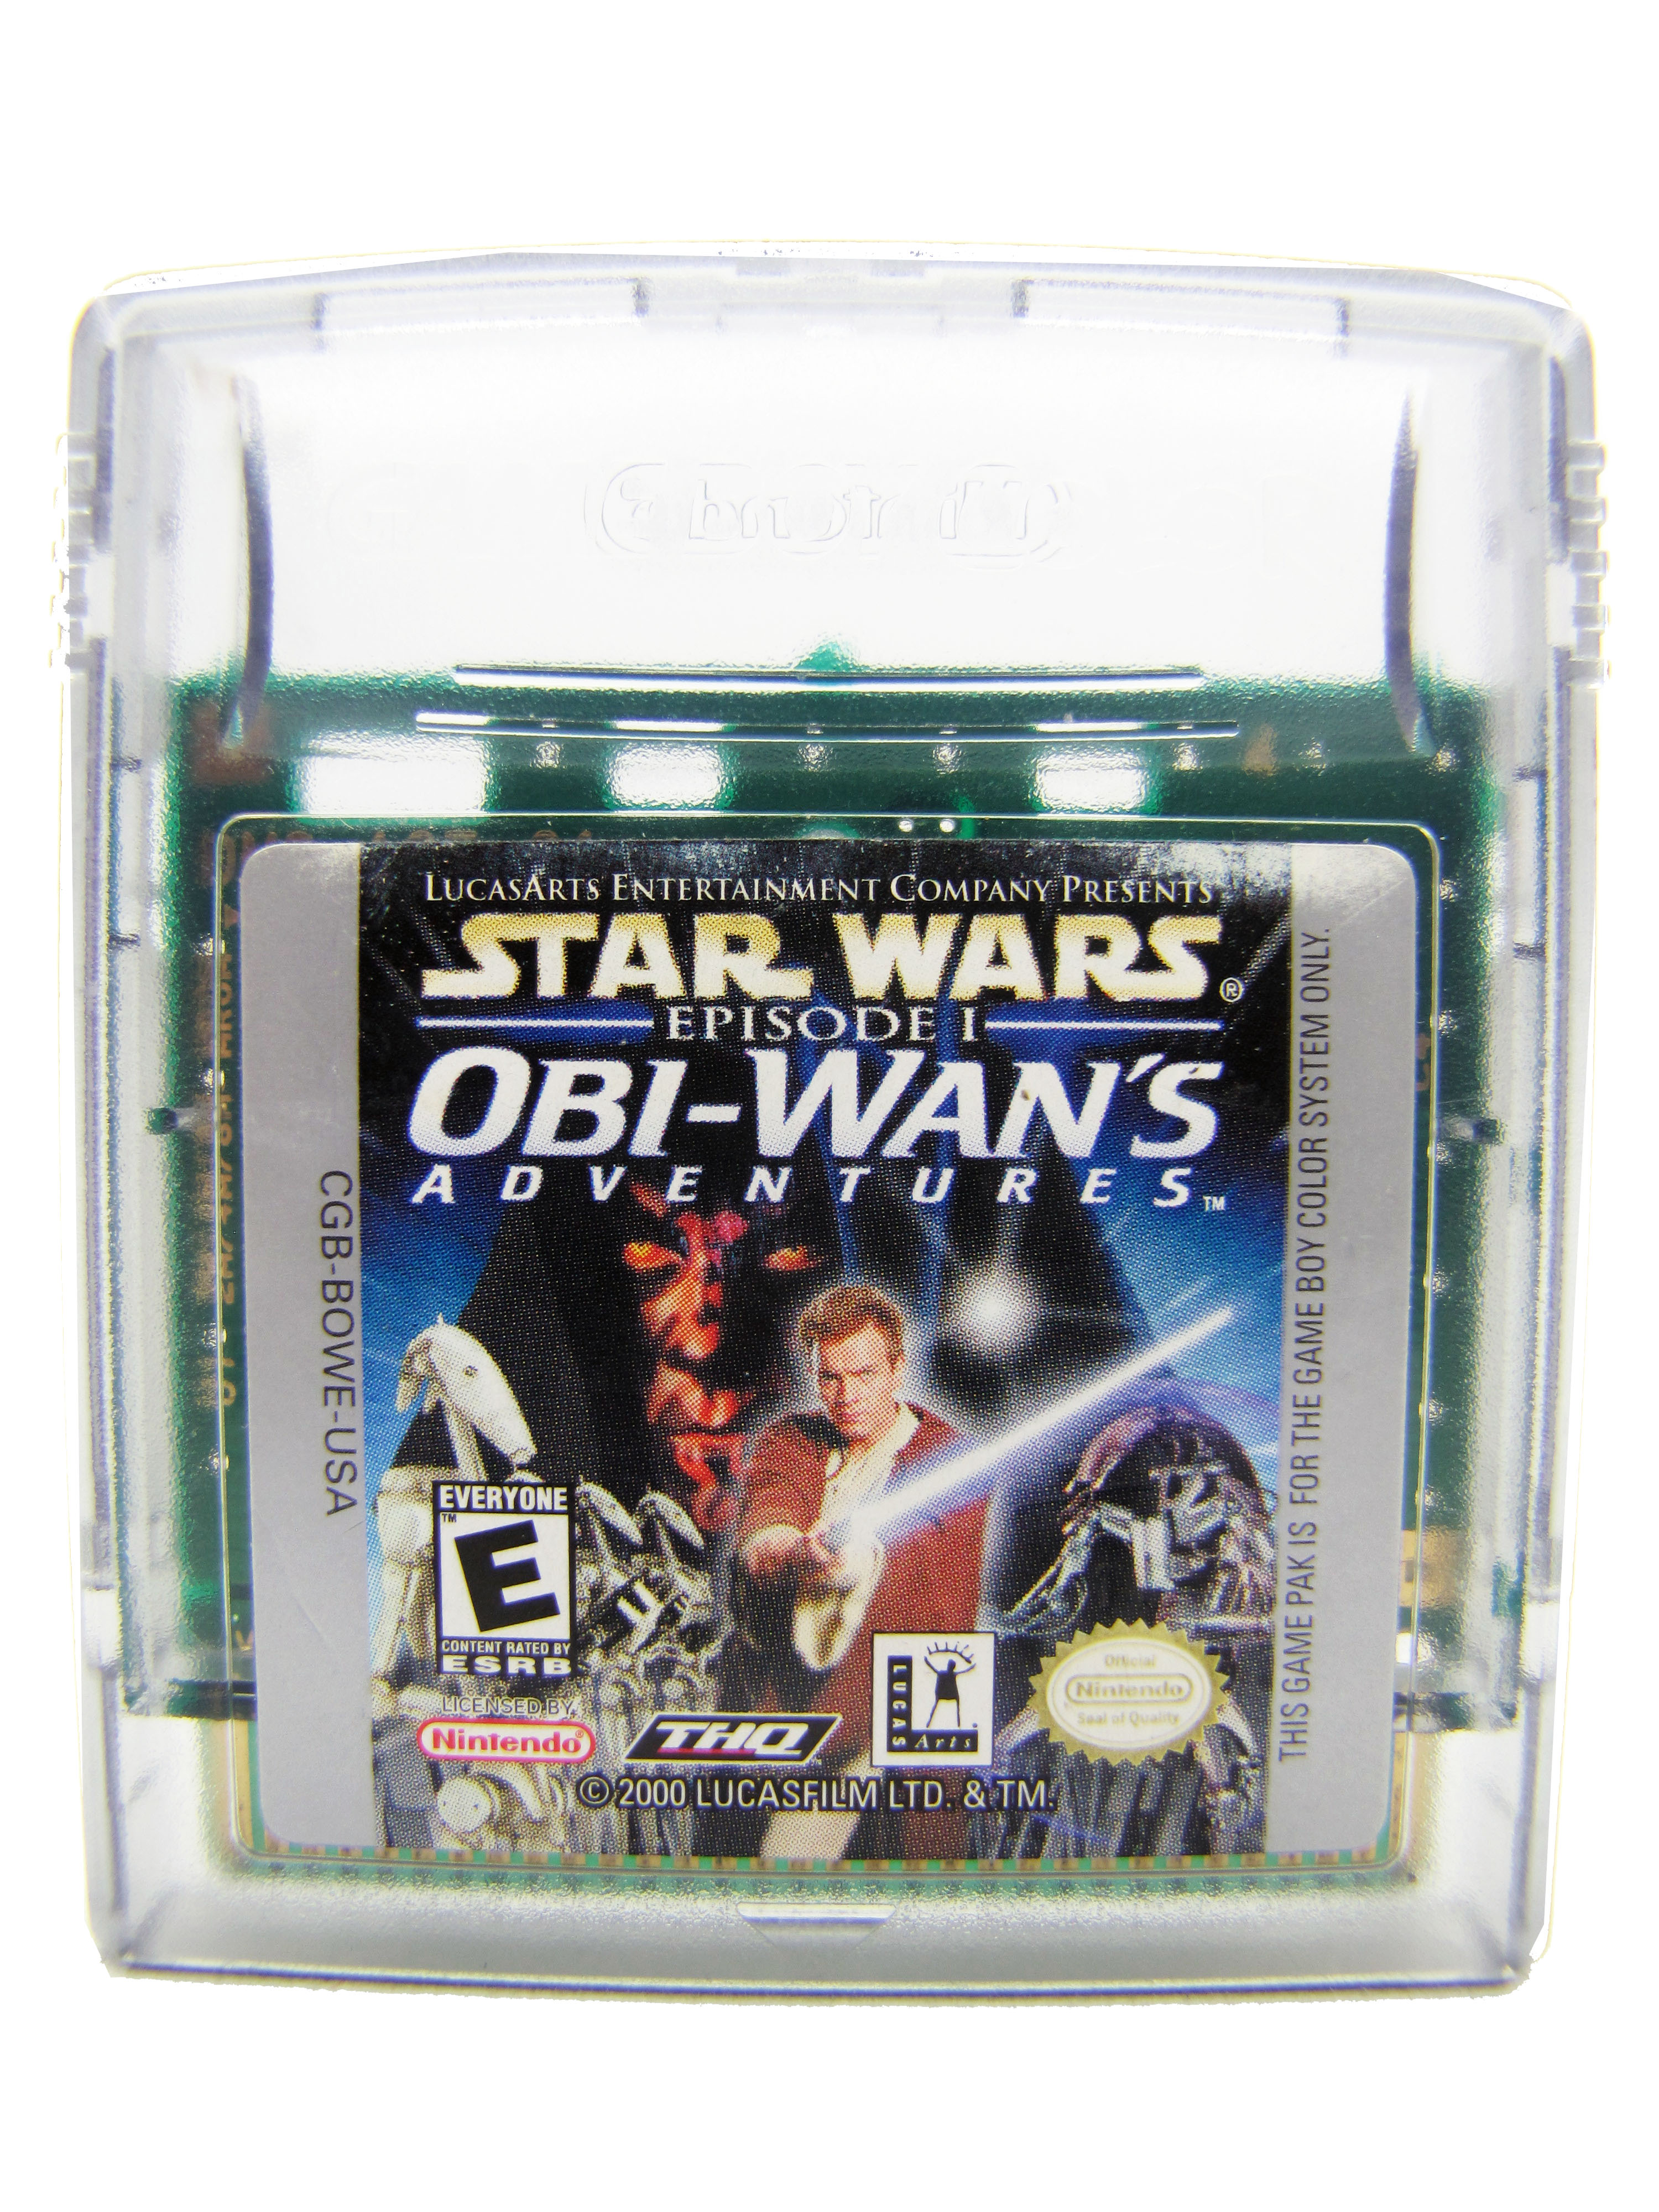 Game Boy Color Star Wars: Episode I Obi-Wan's Adventures - 2000